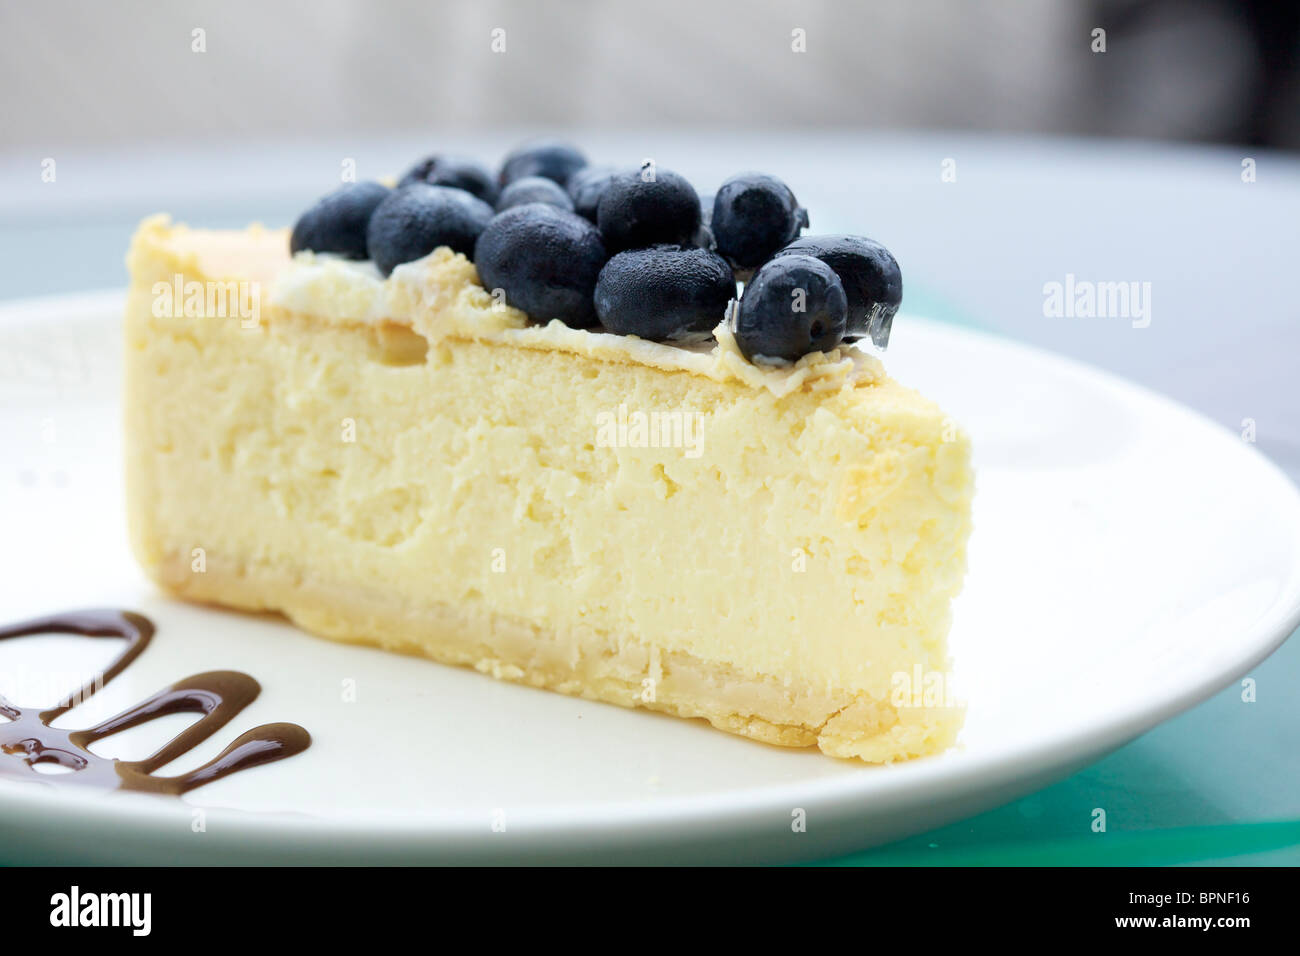 A slice of baked cheesecake with fresh blueberries on top - Stock Image